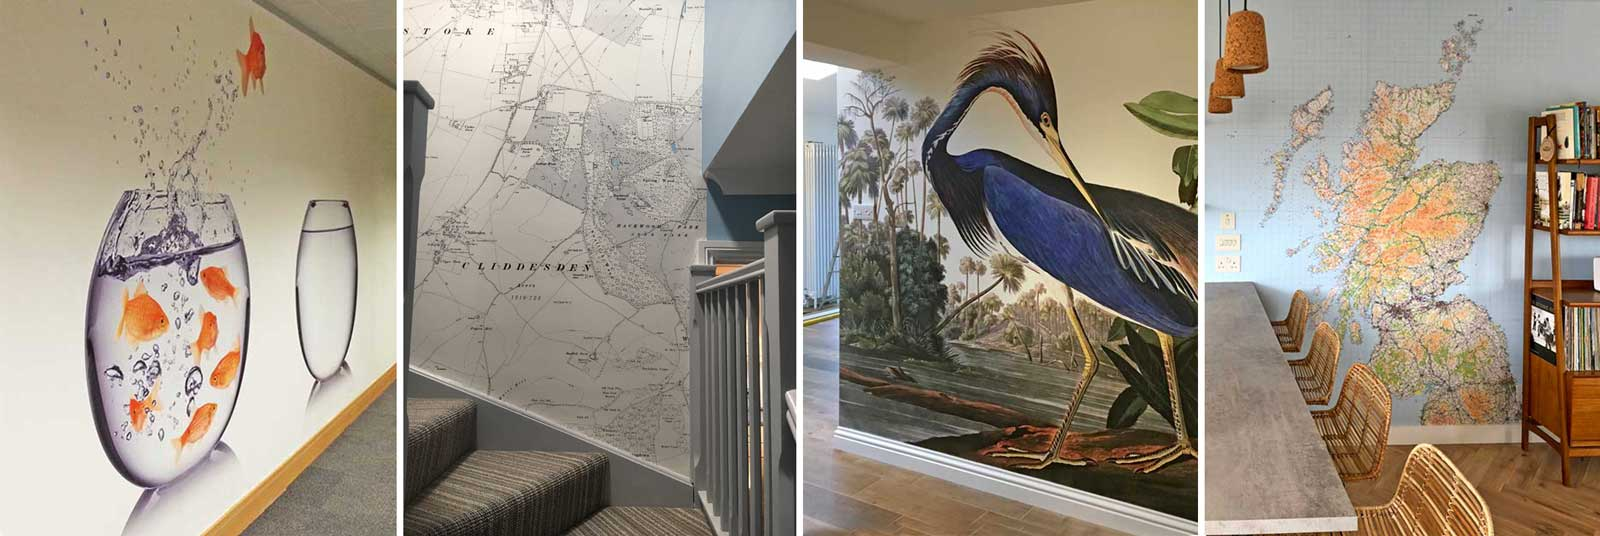 wallpaper mural features